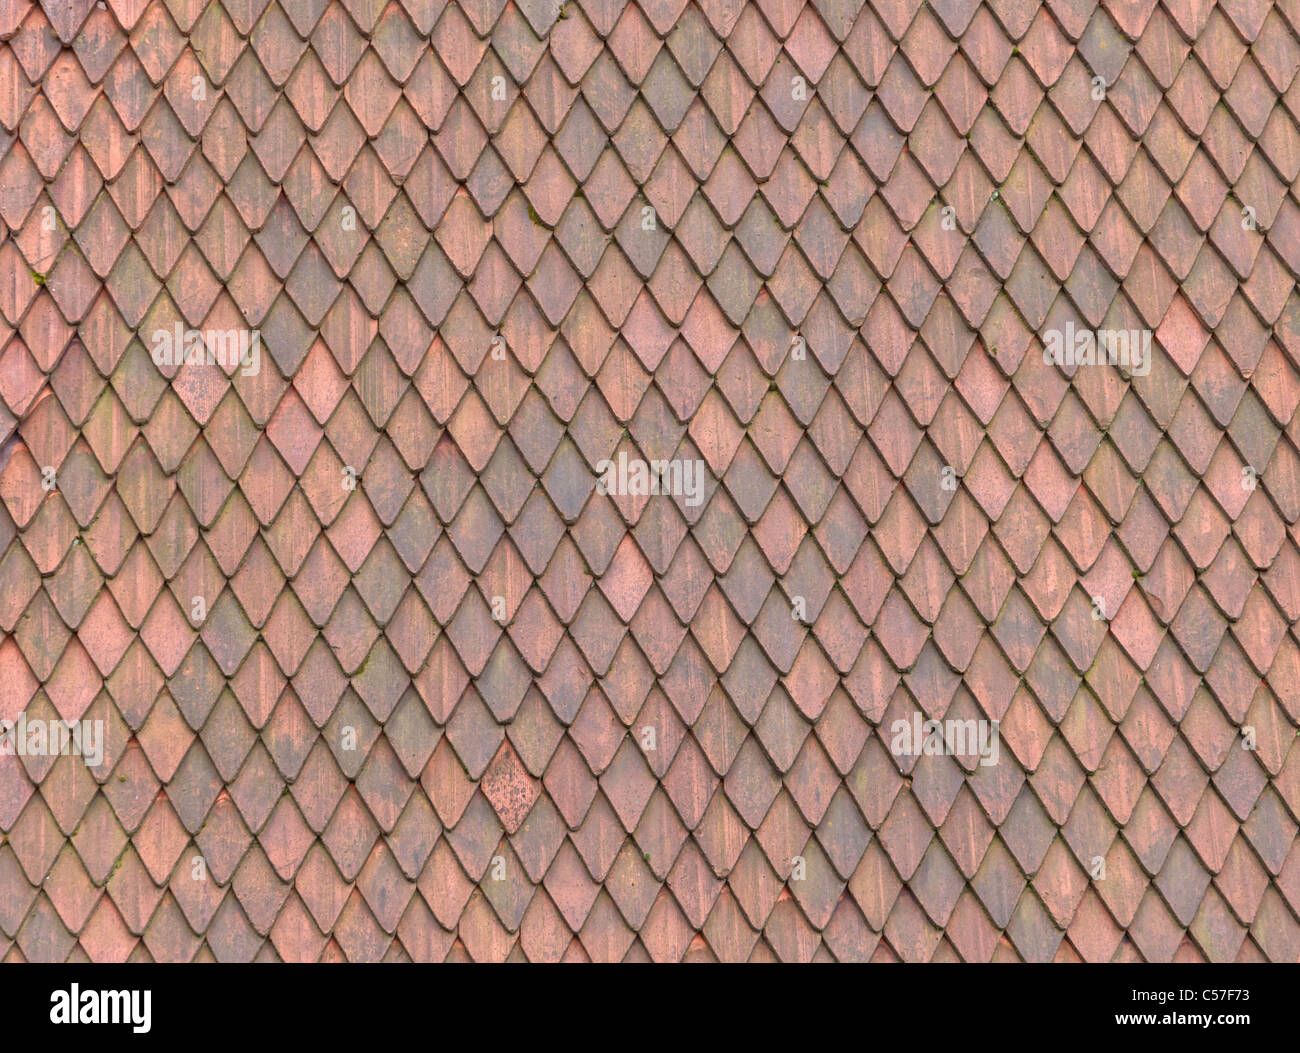 Matériau de texture tuile bâtiment médiéval européen Seamless Pattern roofing Background Photo Stock